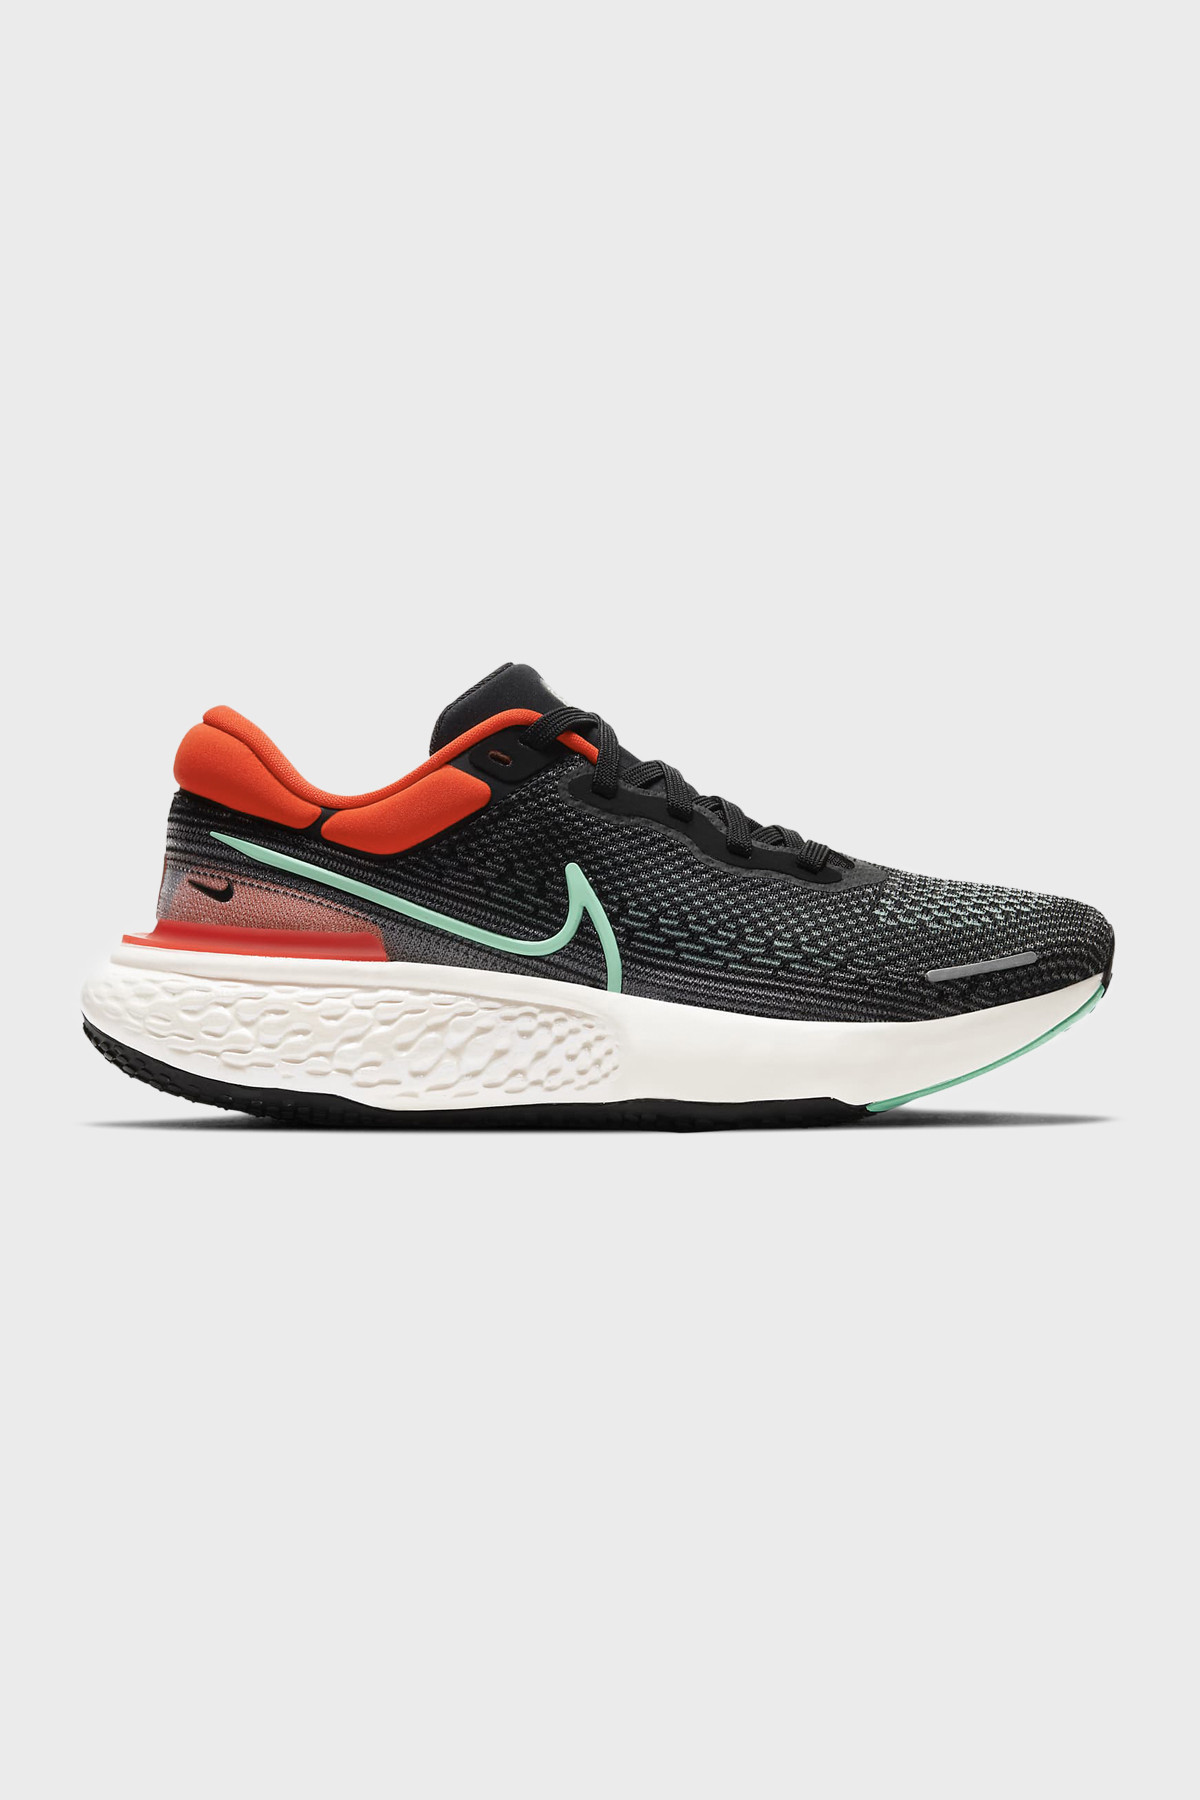 NIKE - Nike ZoomX Invincible Run Flyknit - BLACK RED GREEN